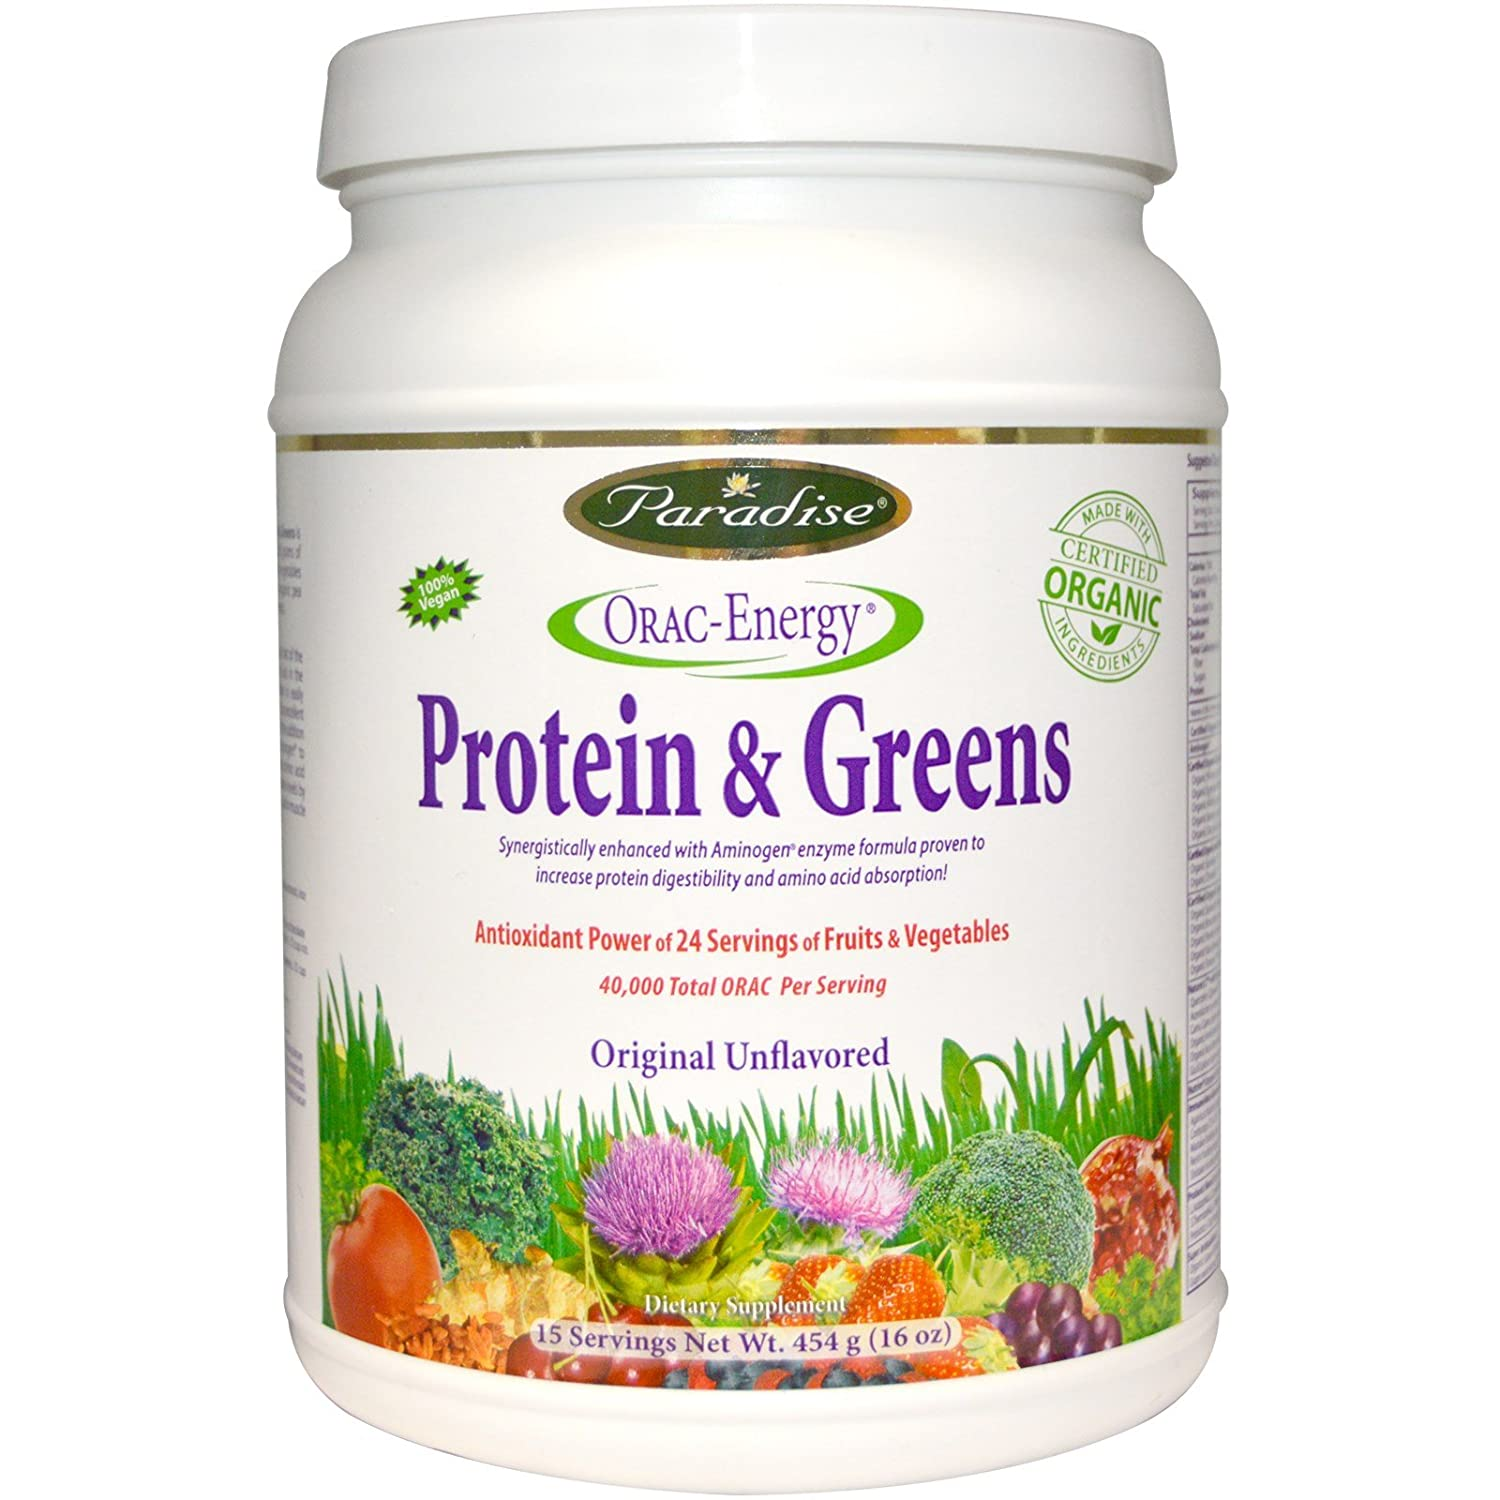 Amazon.com: orac-energy, Proteína y verdes, 16 oz (454 g ...